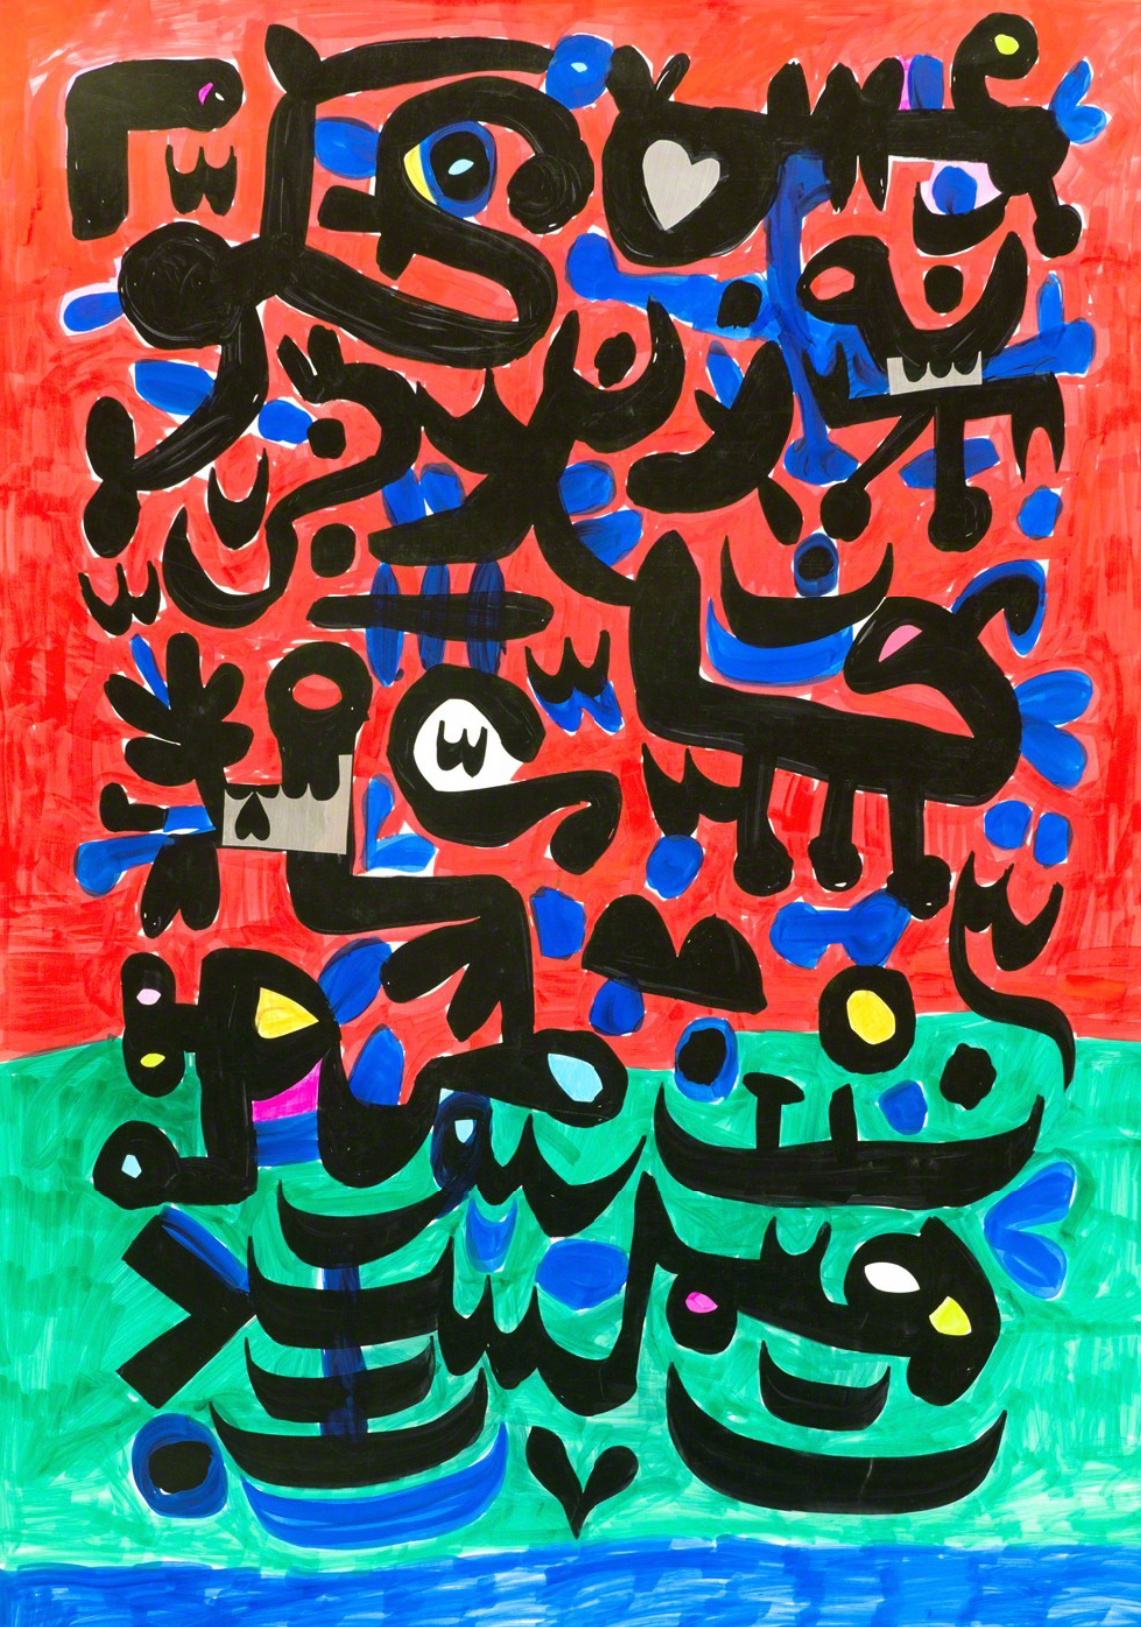 Mohammad Khodashenas, Jungle, marker, acrylic, sticker and collage on coated paper, 100 x 70 cm, 2017